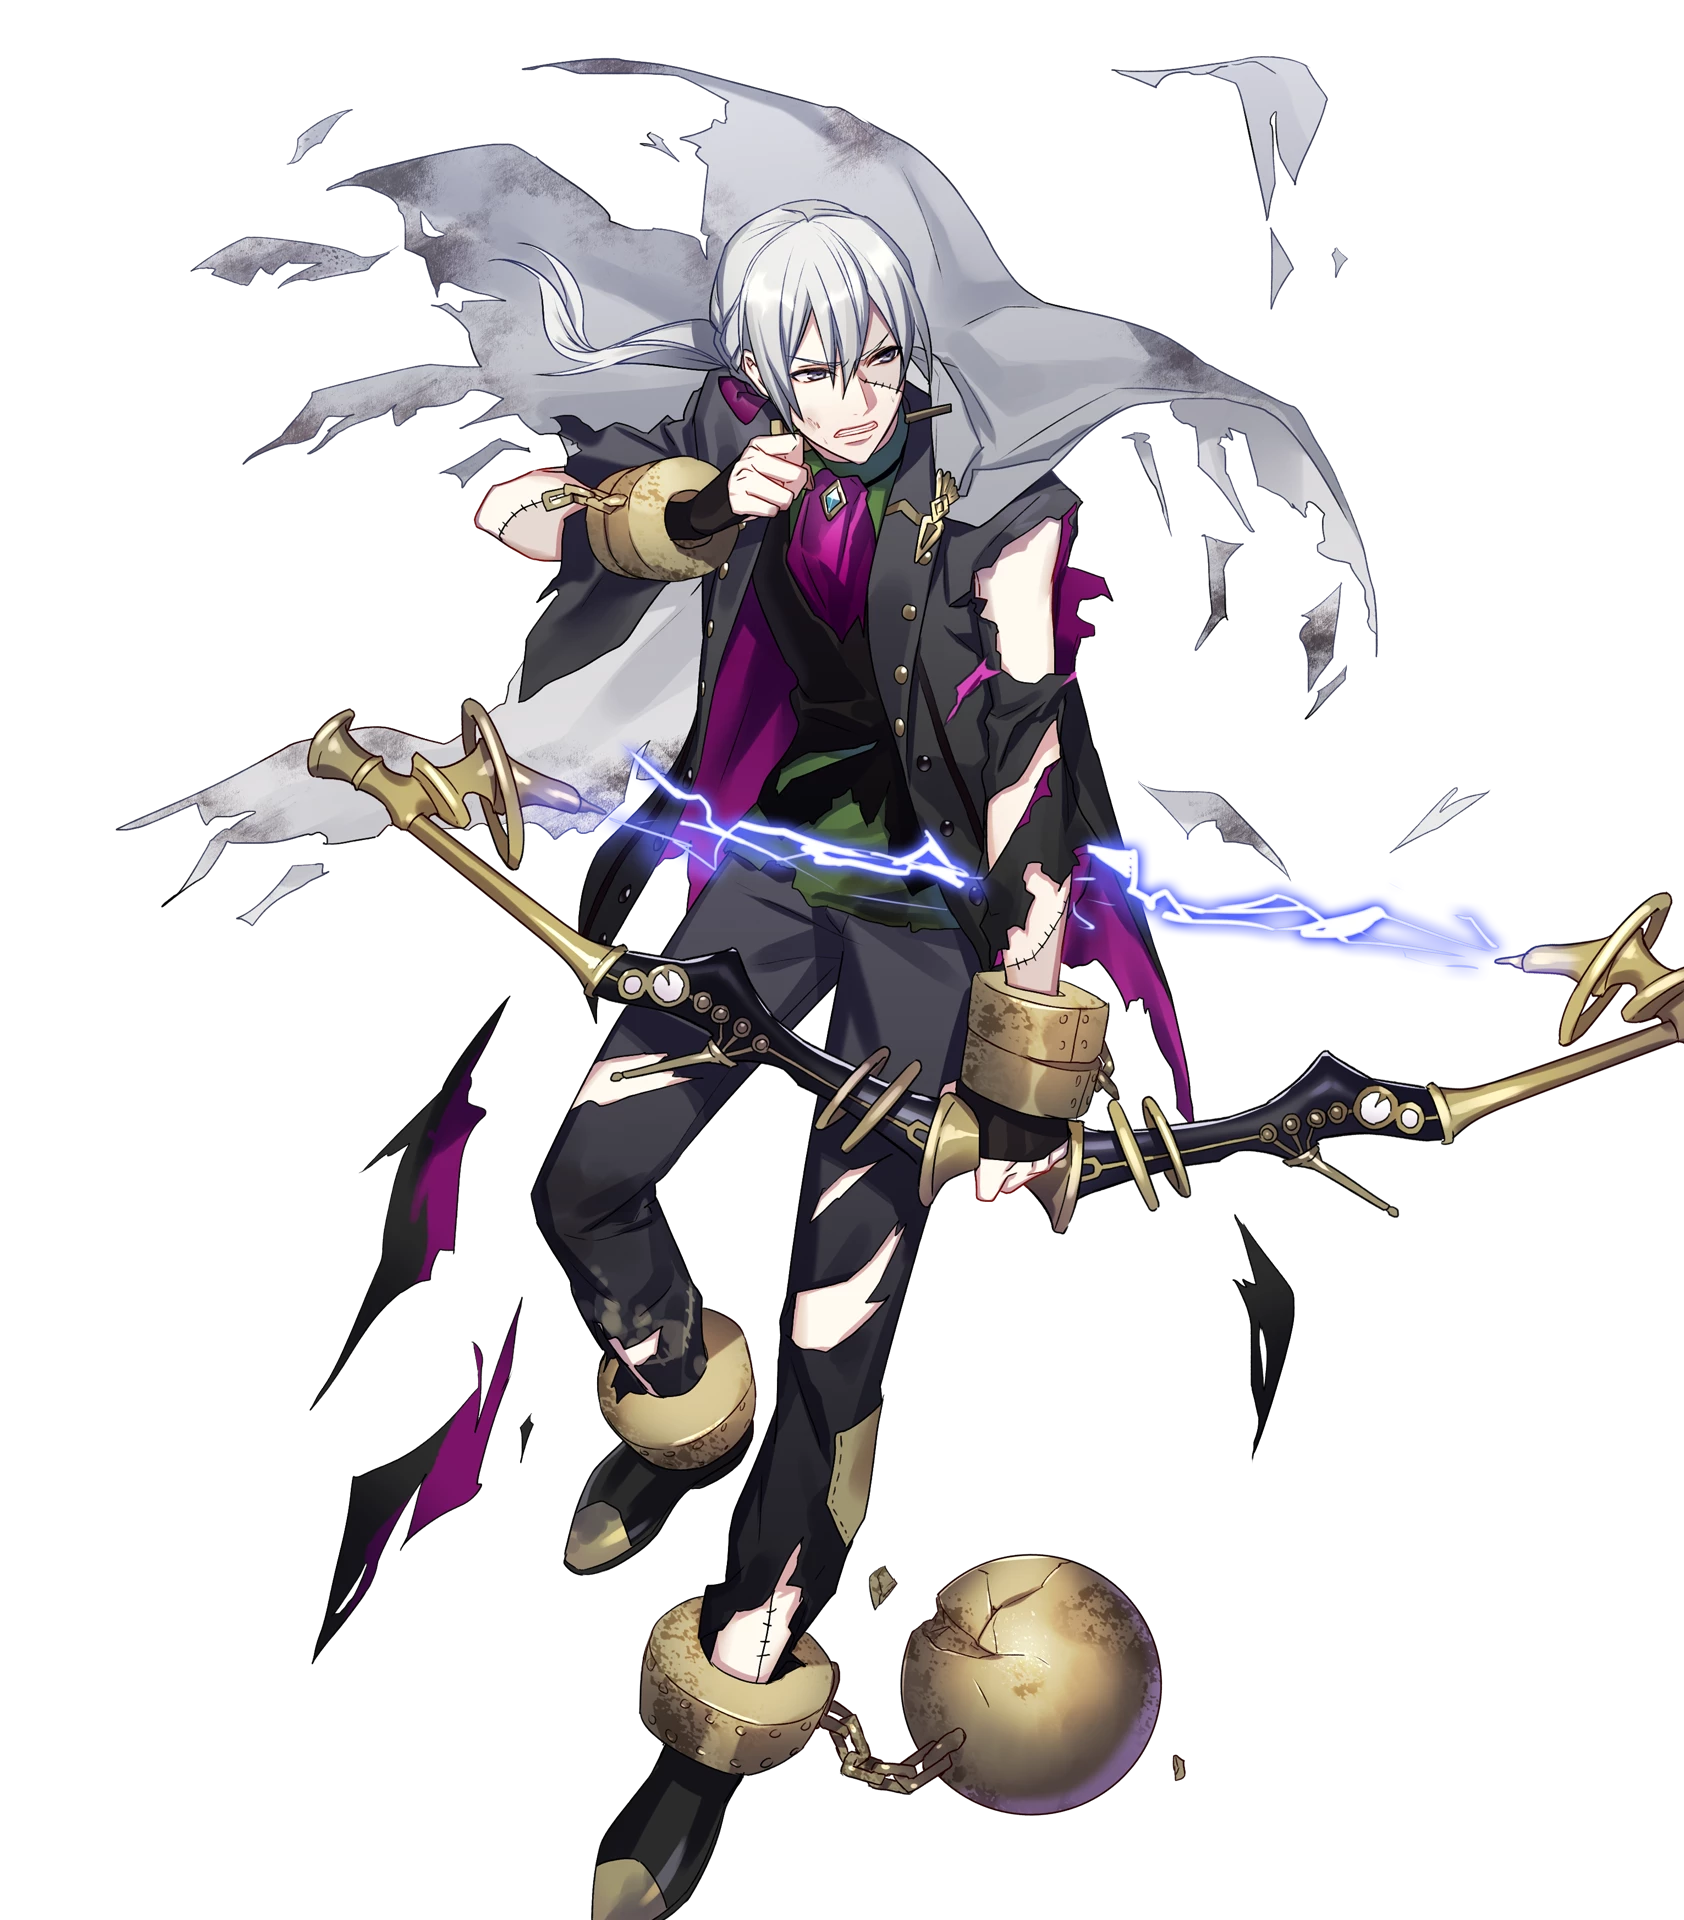 Full Injured Jakob Trick Or Defeat Png Png Image 1684 1920 Pixels Scaled 49 Fire Emblem Characters Anime Arms Fire Emblem Heroes